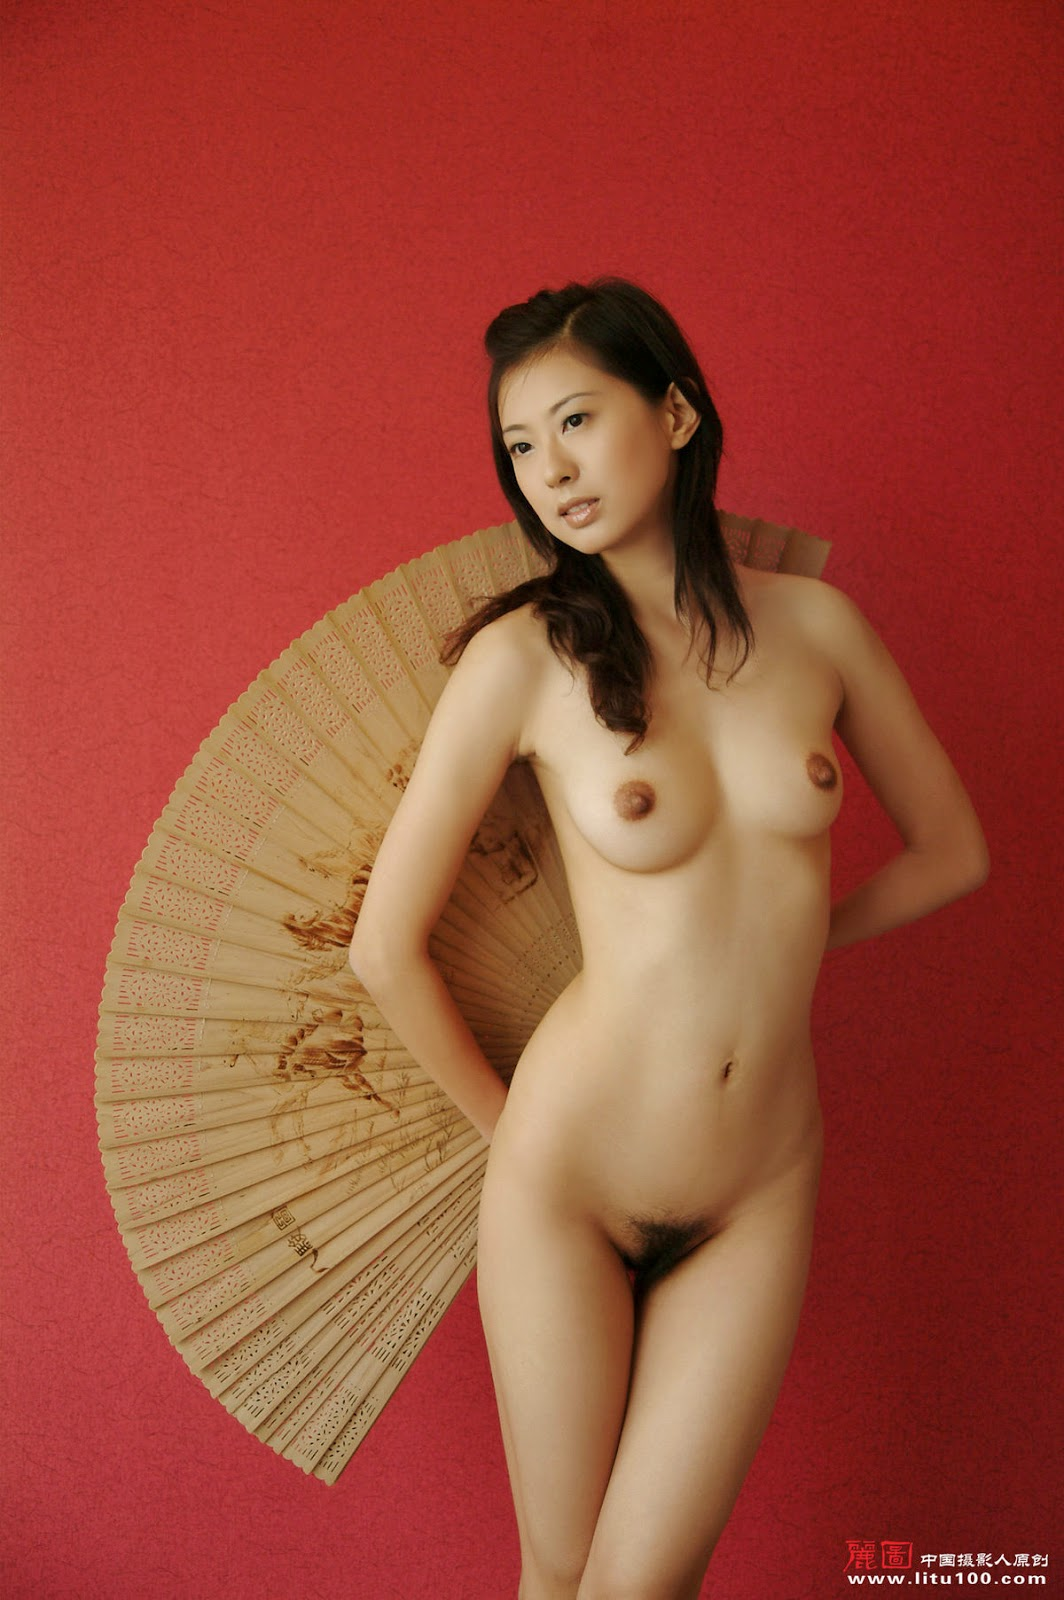 Chinese Girl Naked Video